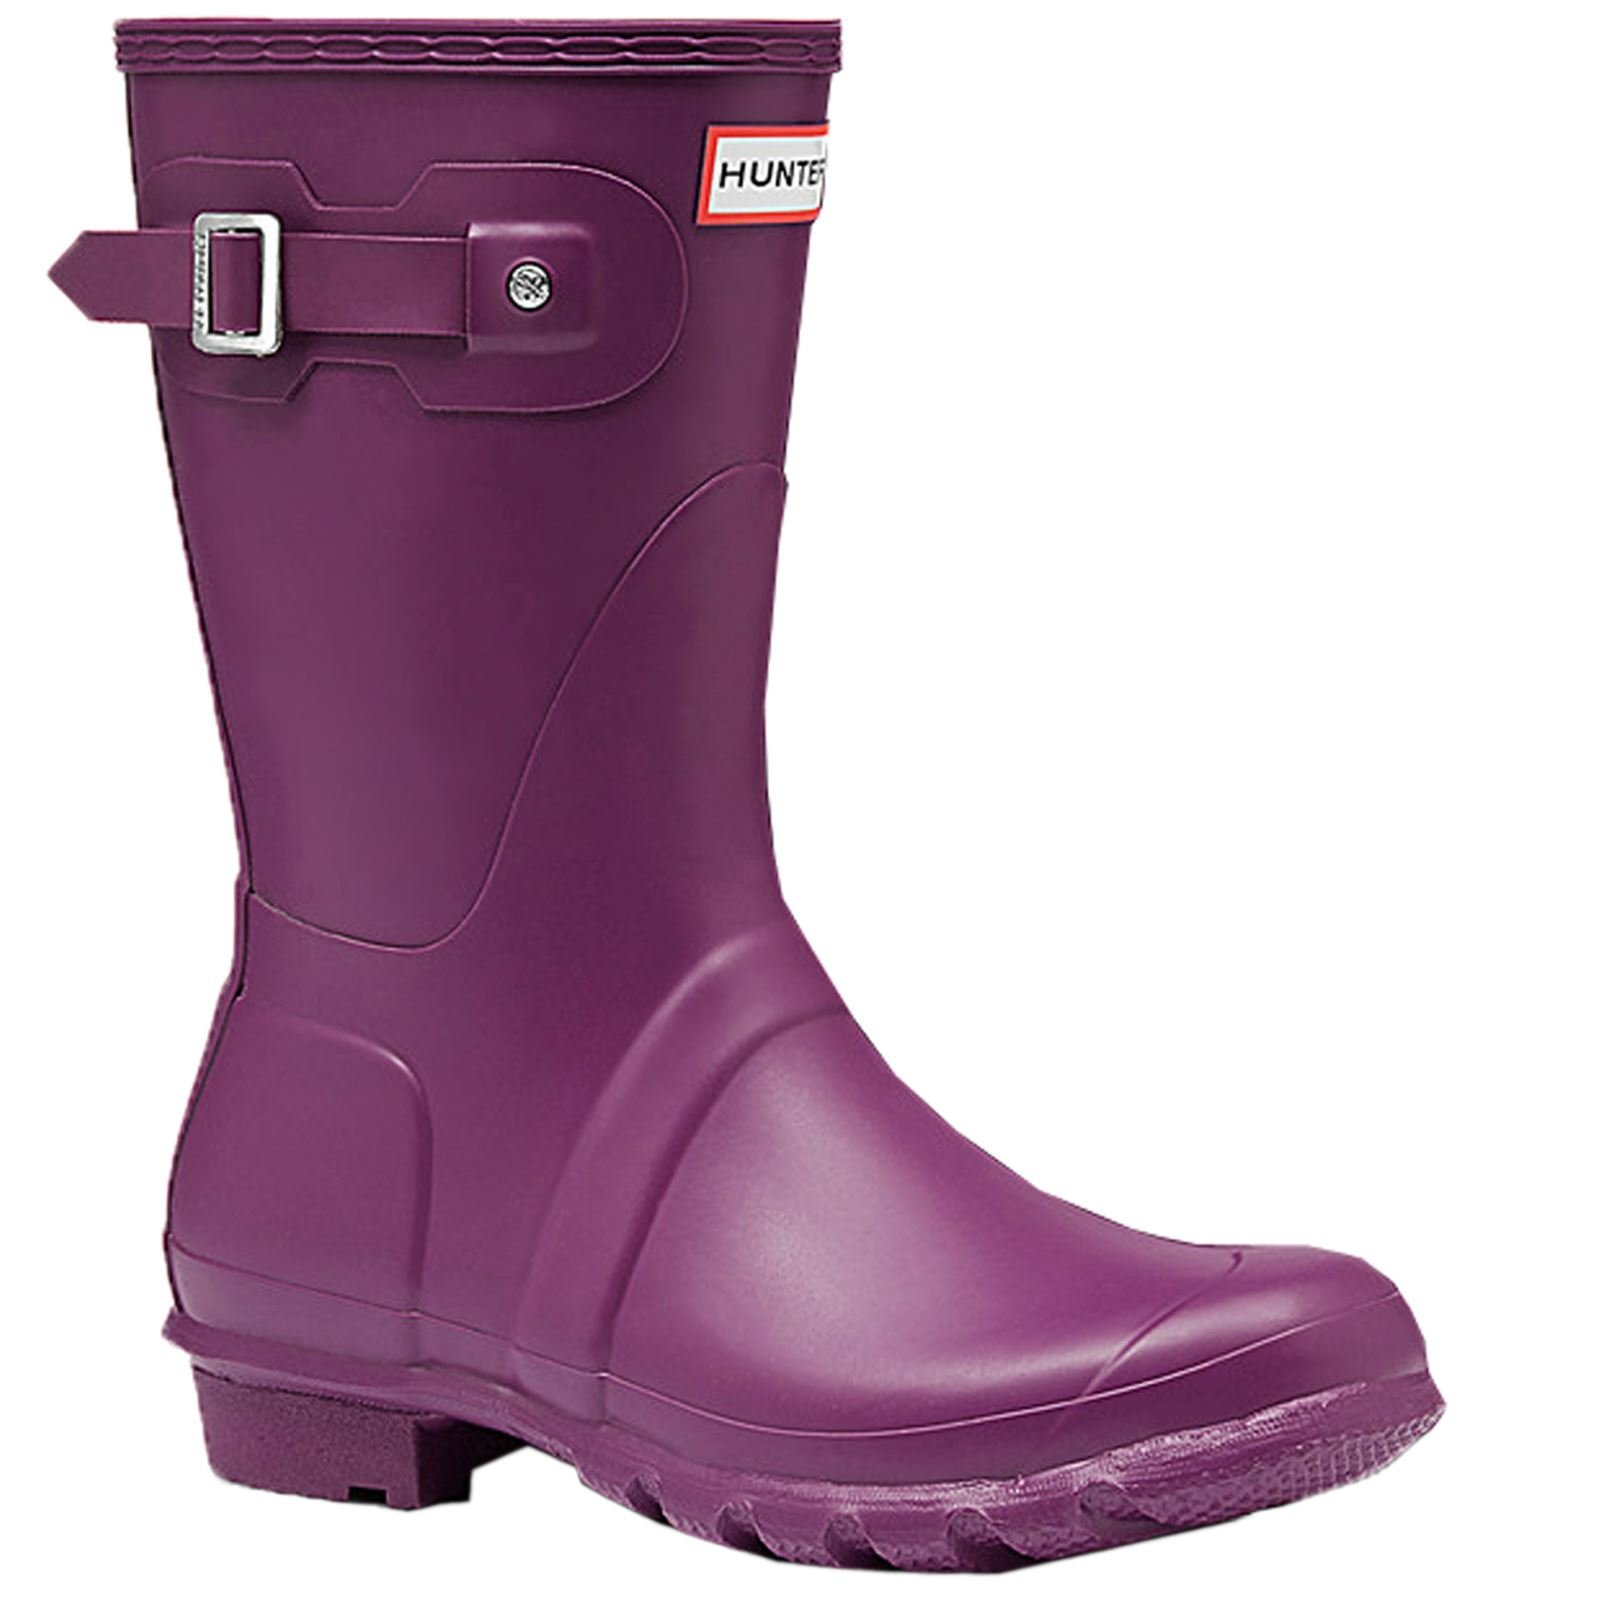 Hunter Womens Original Short Violet Rubber Boots 10 US